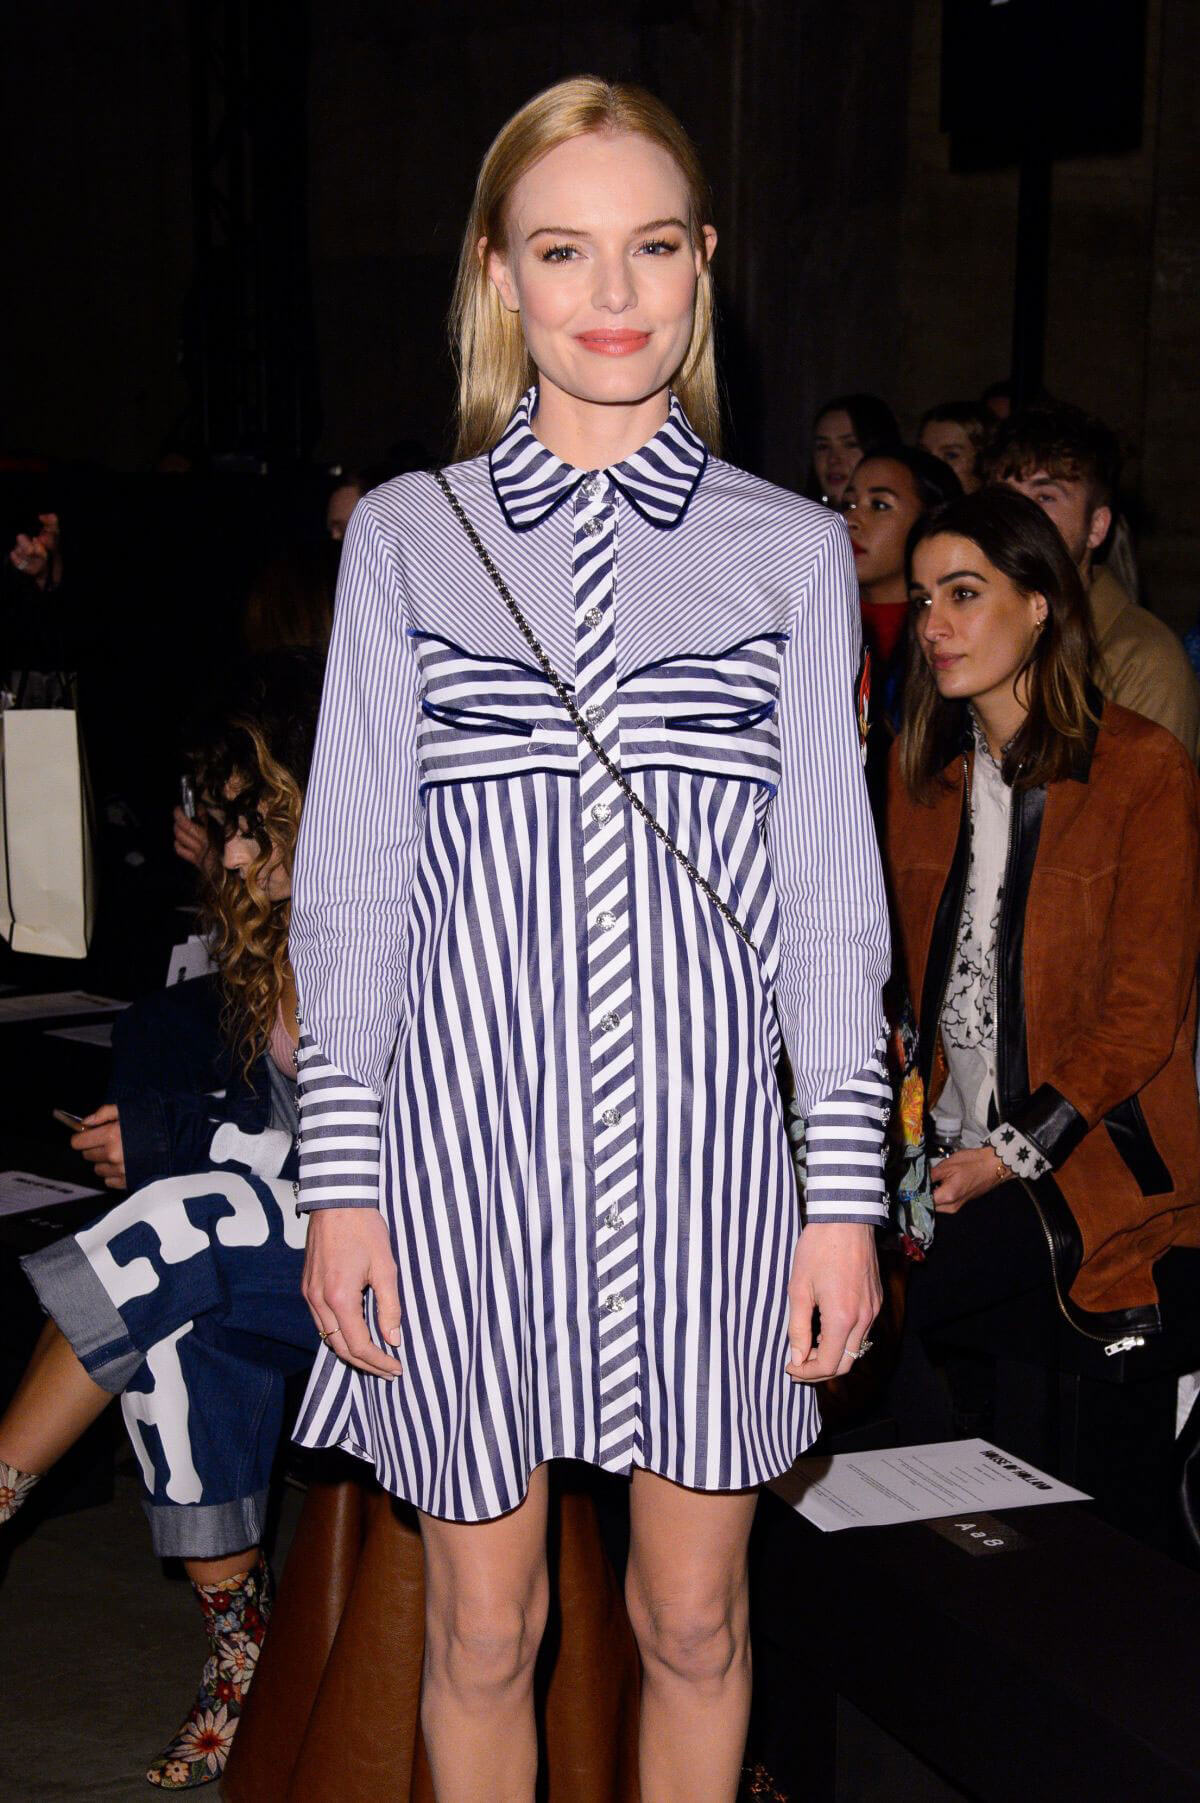 Kate Bosworth Stills at House of Holland Fashion Show in London